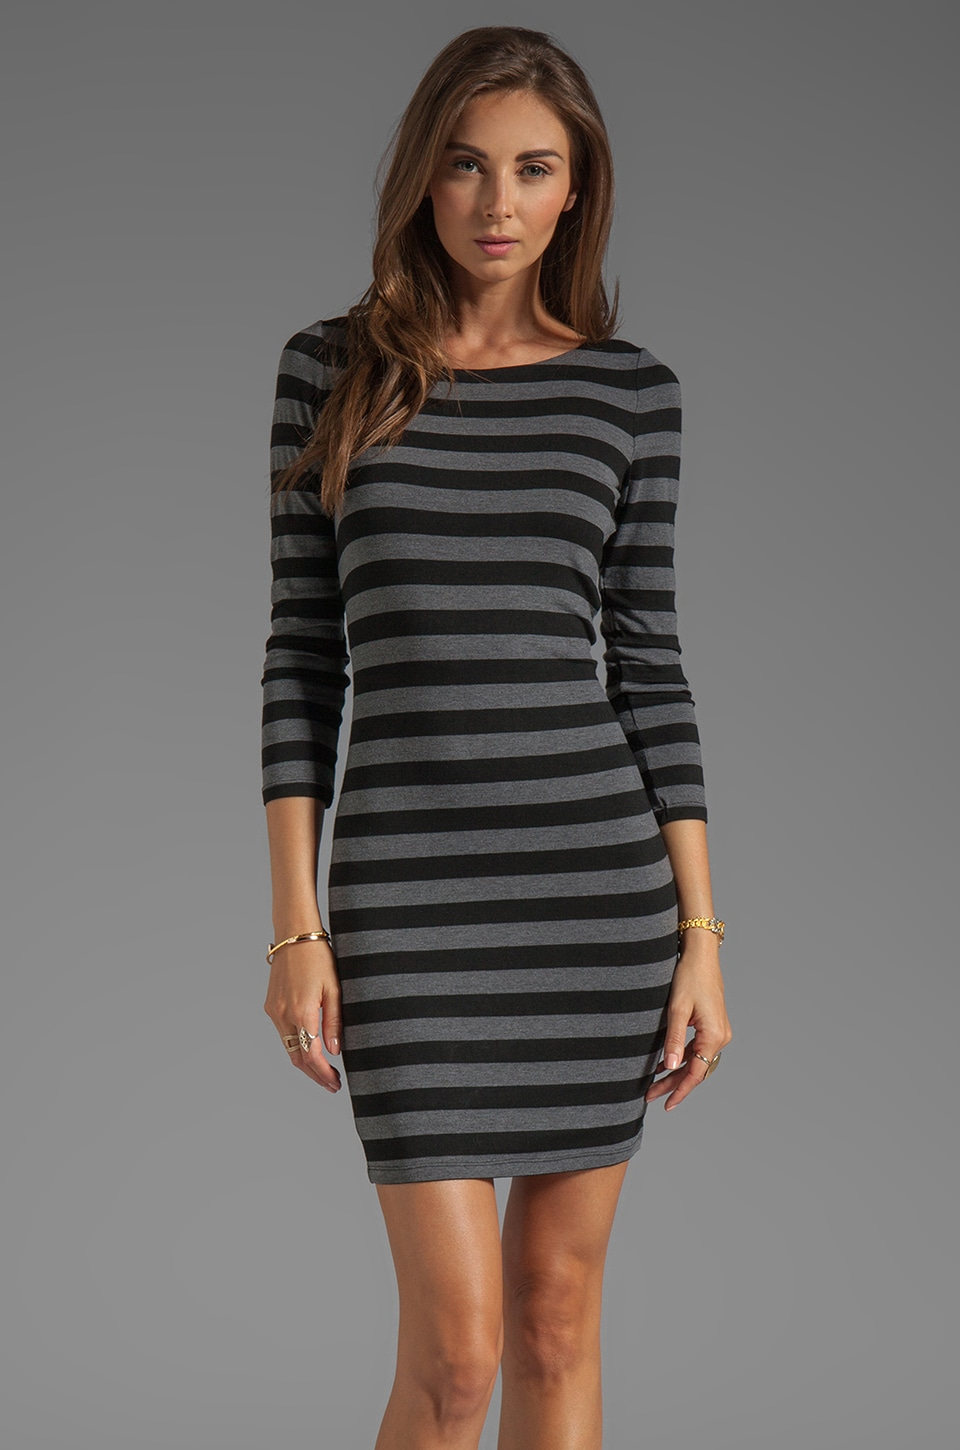 Alice + Olivia Long Sleeve Scoop Neck Dress in Black/Grey